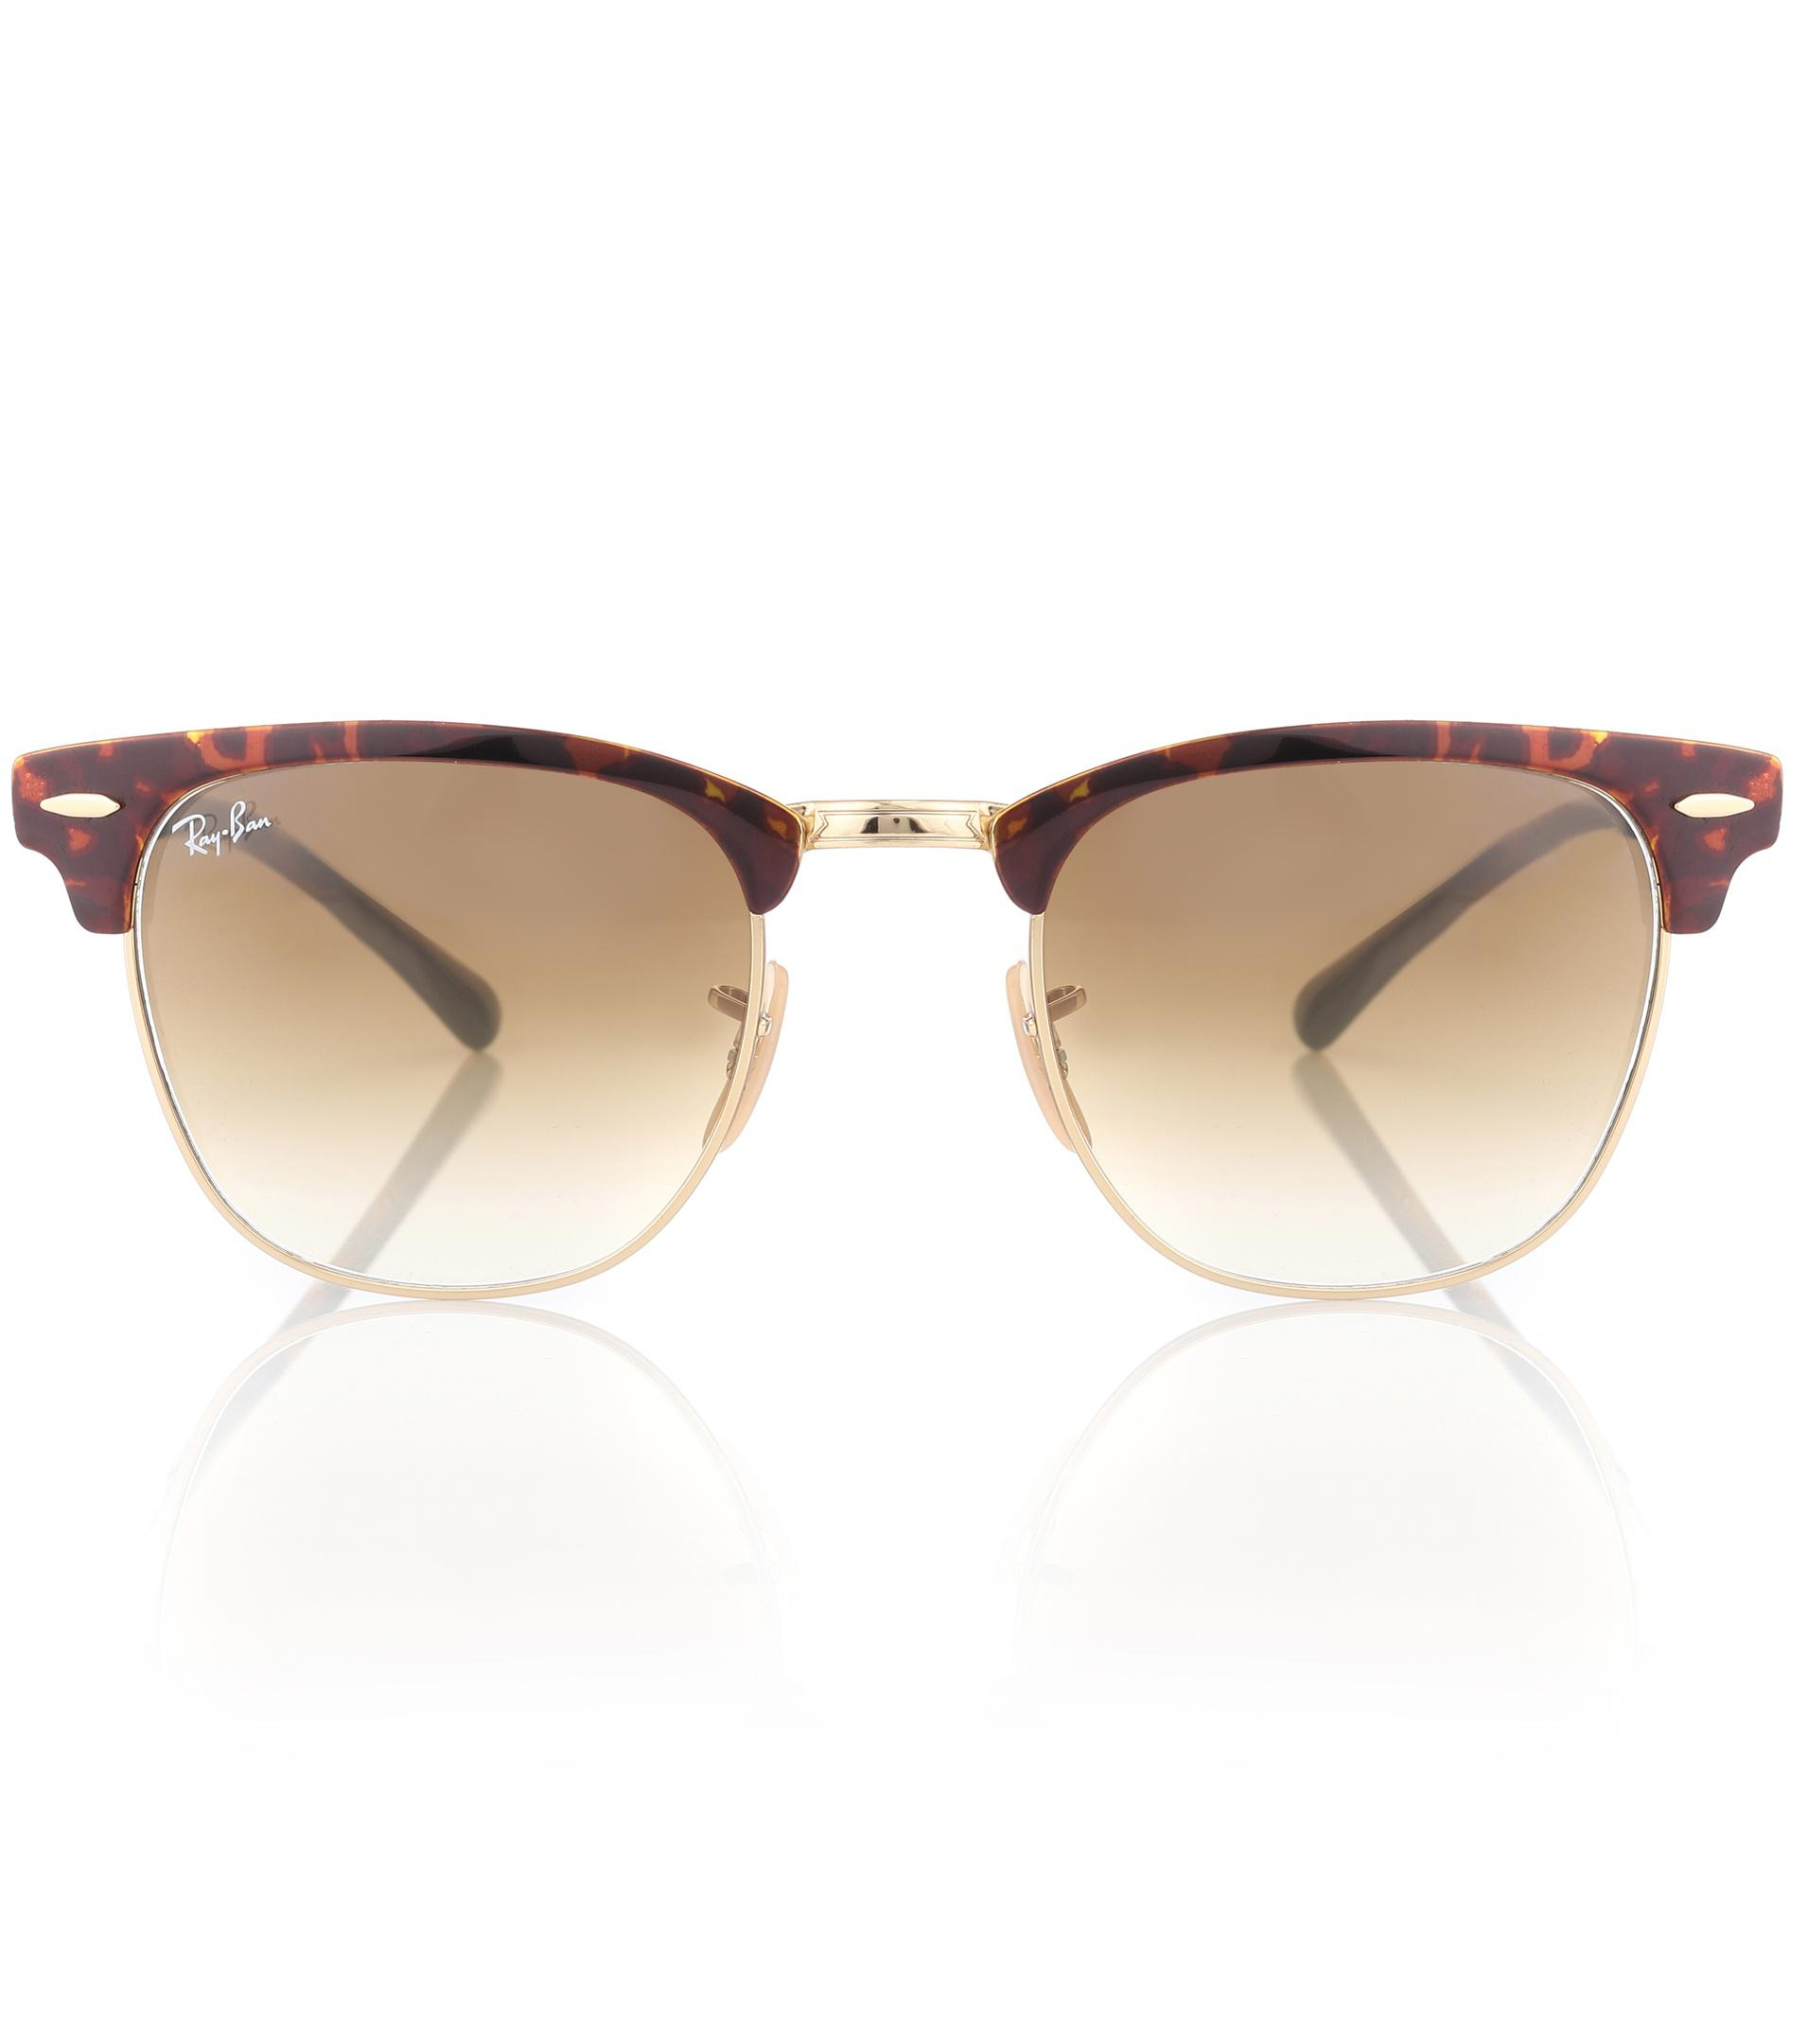 c57ed83ff84 Lyst - Ray-Ban Rb3716 Clubmaster Sunglasses in Brown